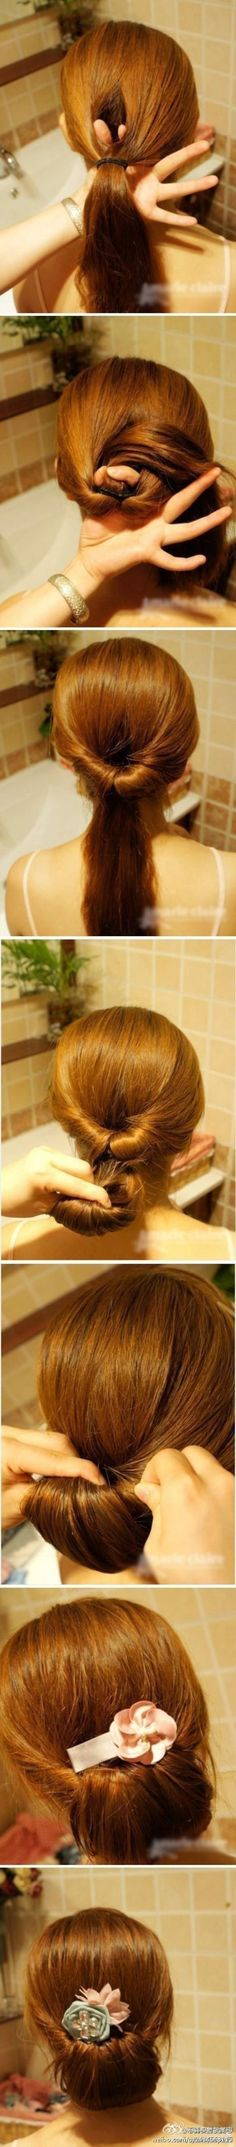 Wedding Hairstyles > Wedding Hair Ideas #800764 - Weddbook